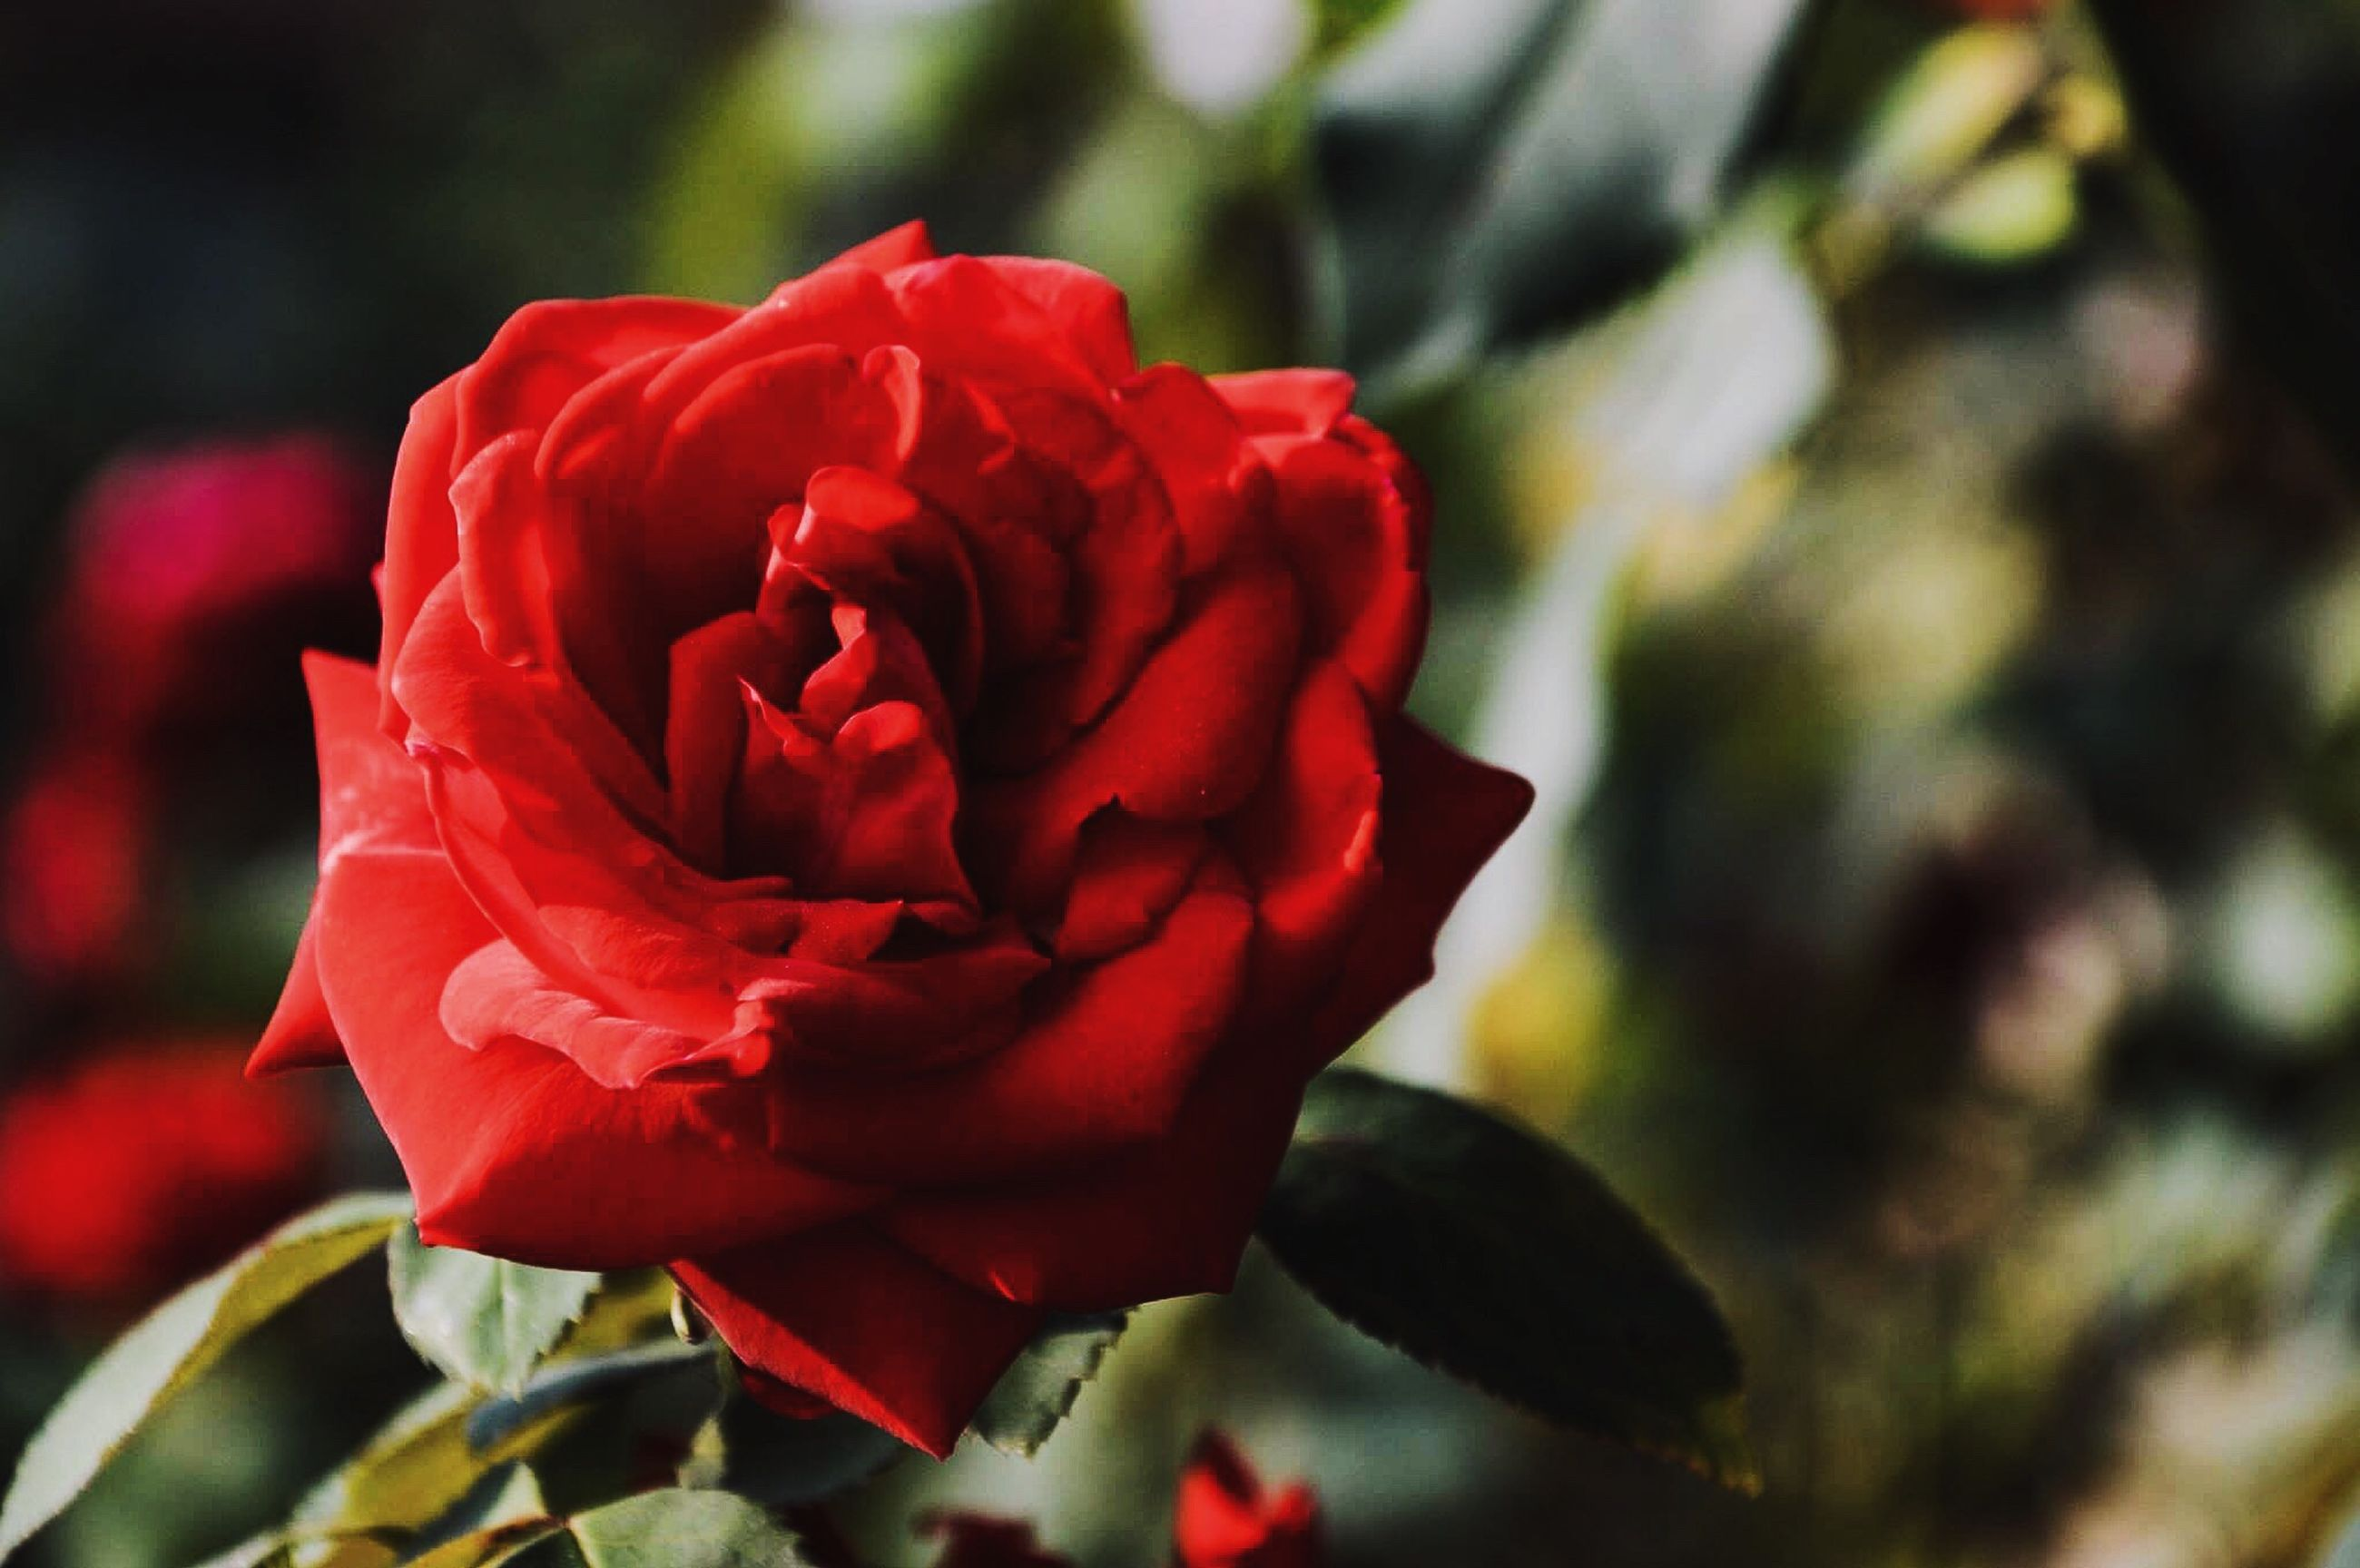 flower, petal, nature, red, beauty in nature, fragility, growth, plant, flower head, close-up, focus on foreground, no people, freshness, outdoors, blooming, rose - flower, day